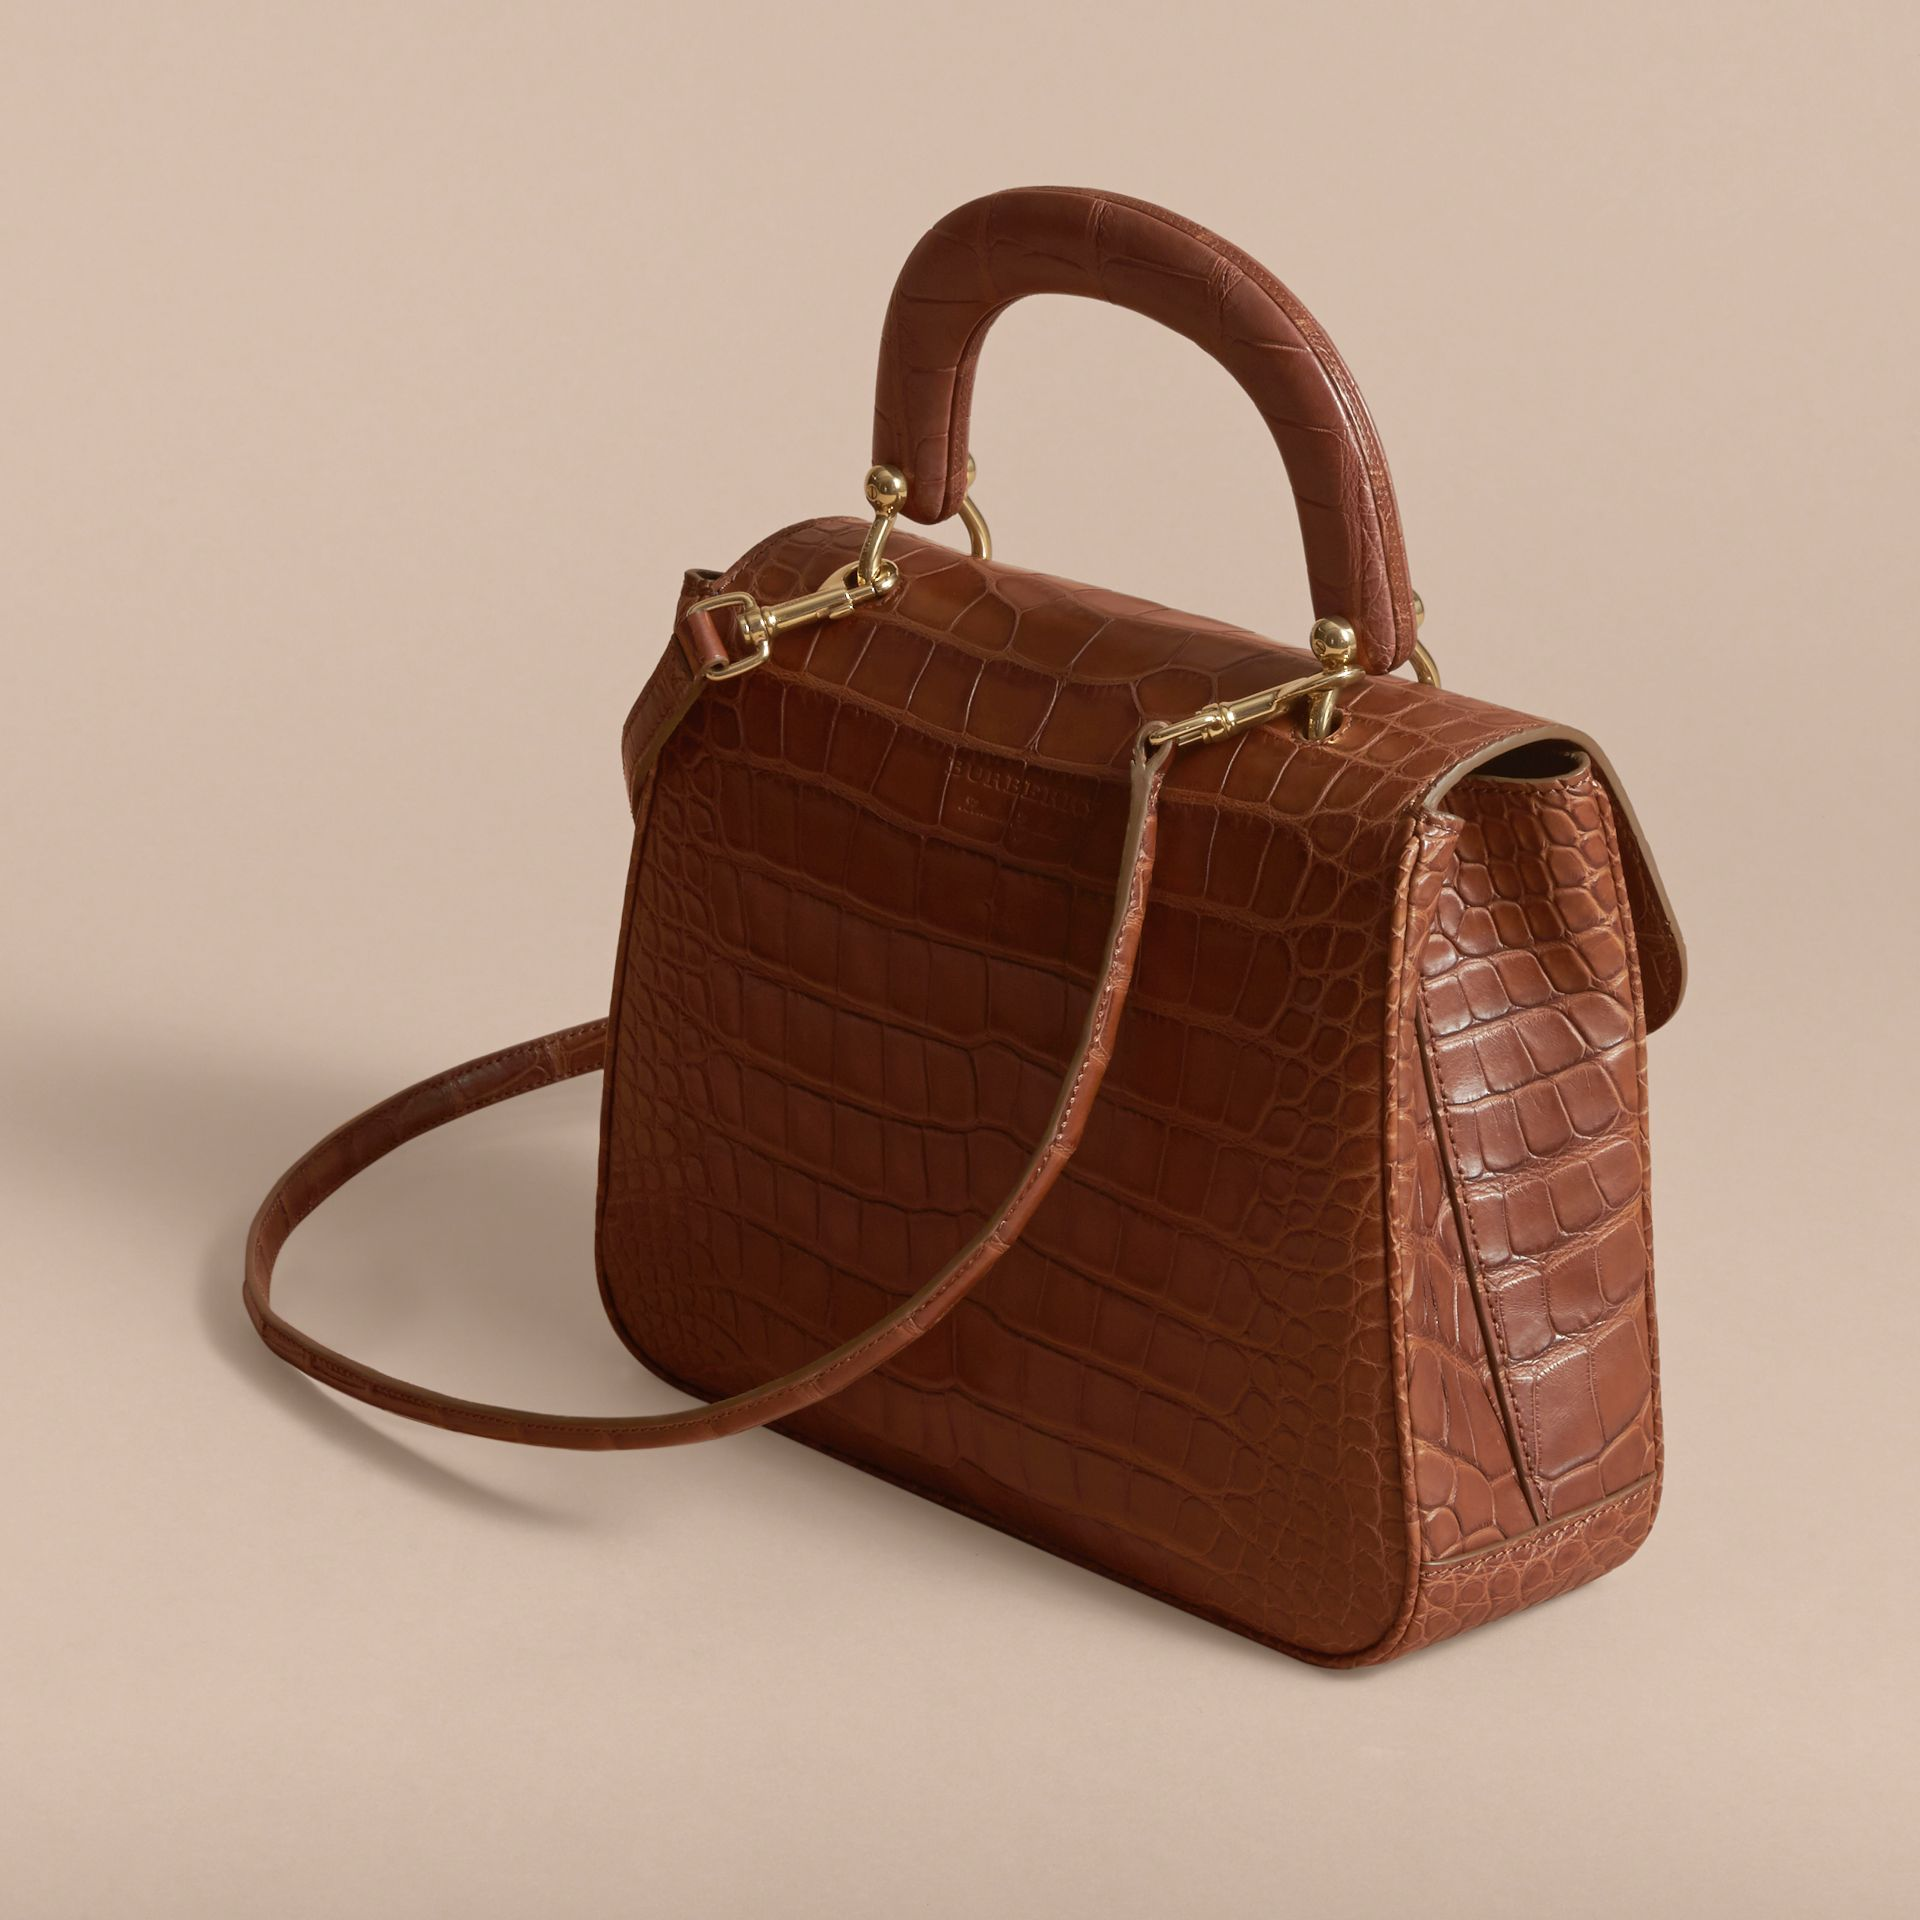 The Medium DK88 Top Handle Bag in Alligator in Tan - Women | Burberry - gallery image 2